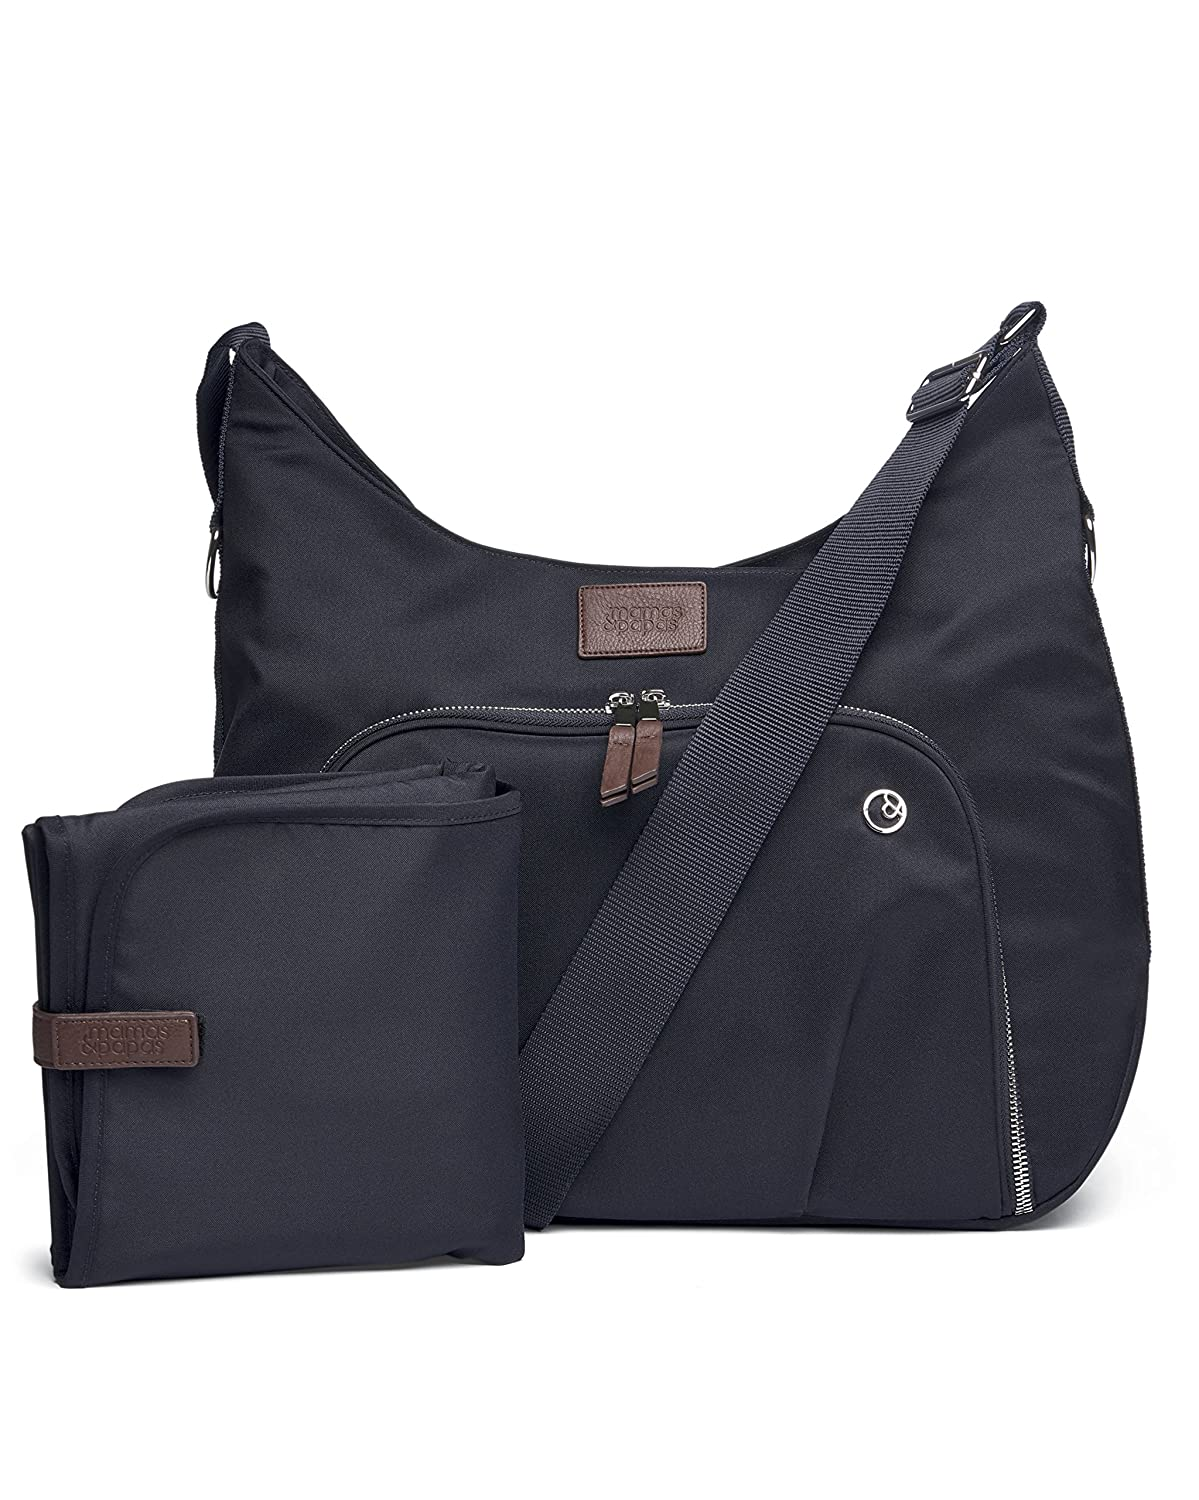 Chestnut Baby Changing Bag Nappy Changing Bag Mamas /& Papas Bowling Changing Bag Pram//Pushchair//Buggy Accessories